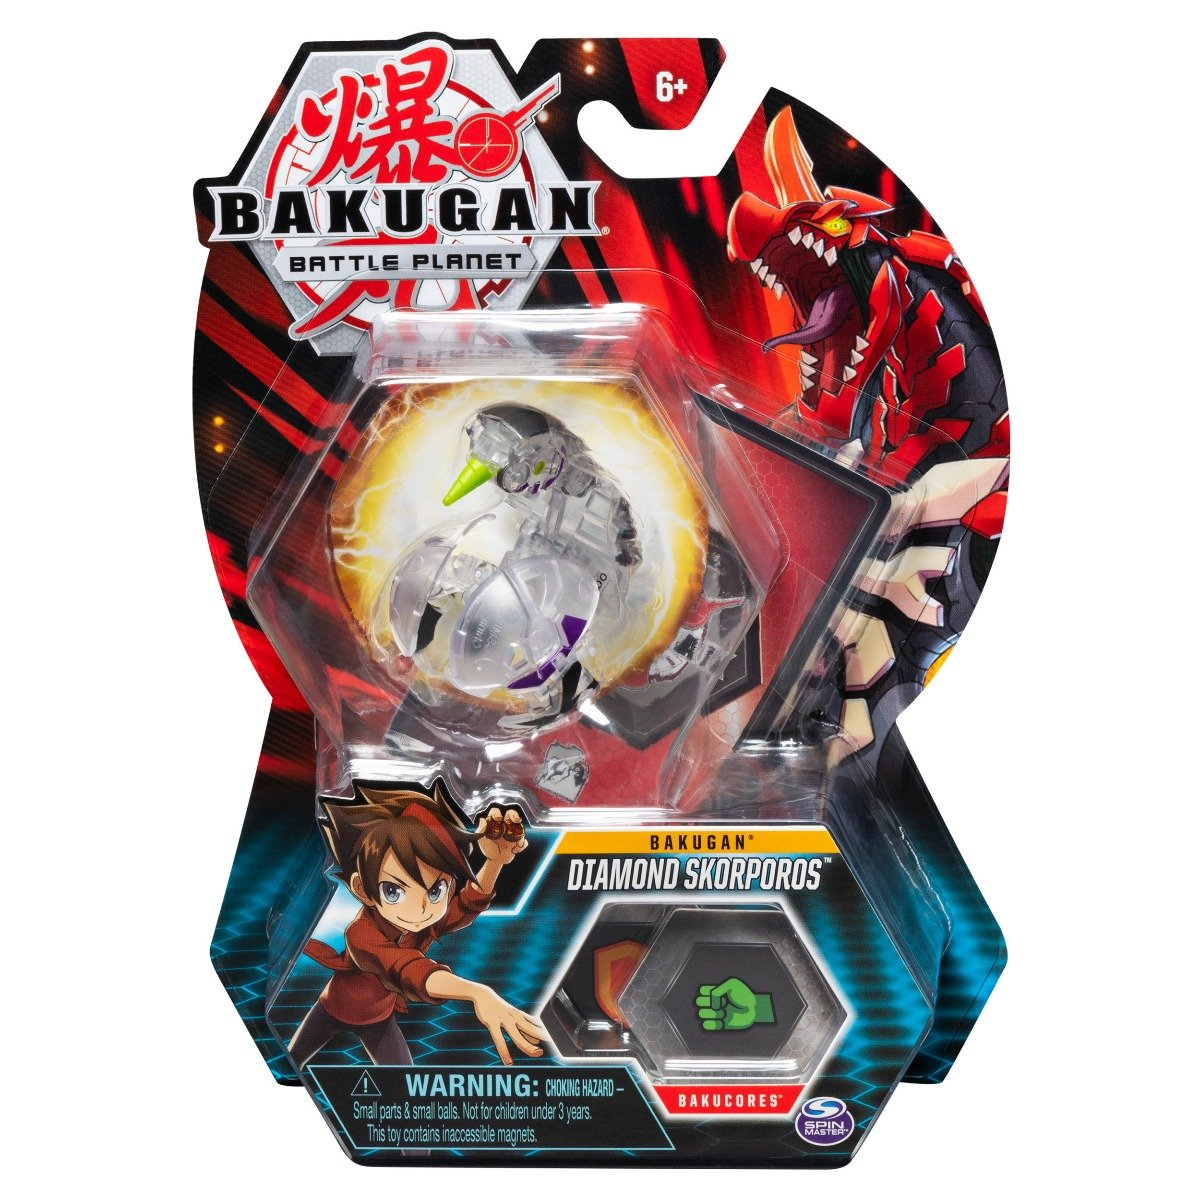 Figurina Bakugan Battle Planet, Diamond Skorporos, 20119875